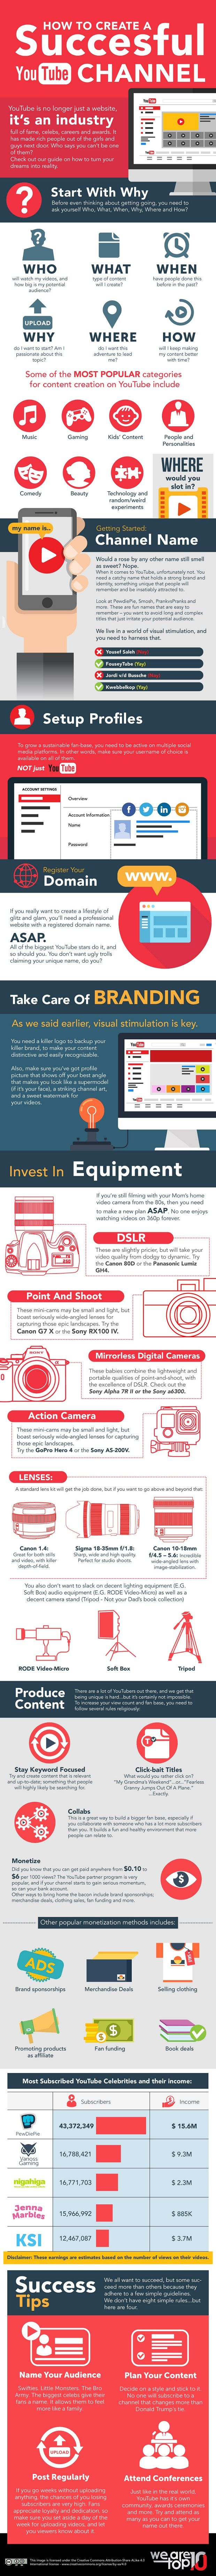 There's so much content on YouTube vying for attention, but this infographic will show you the model for consistent success.